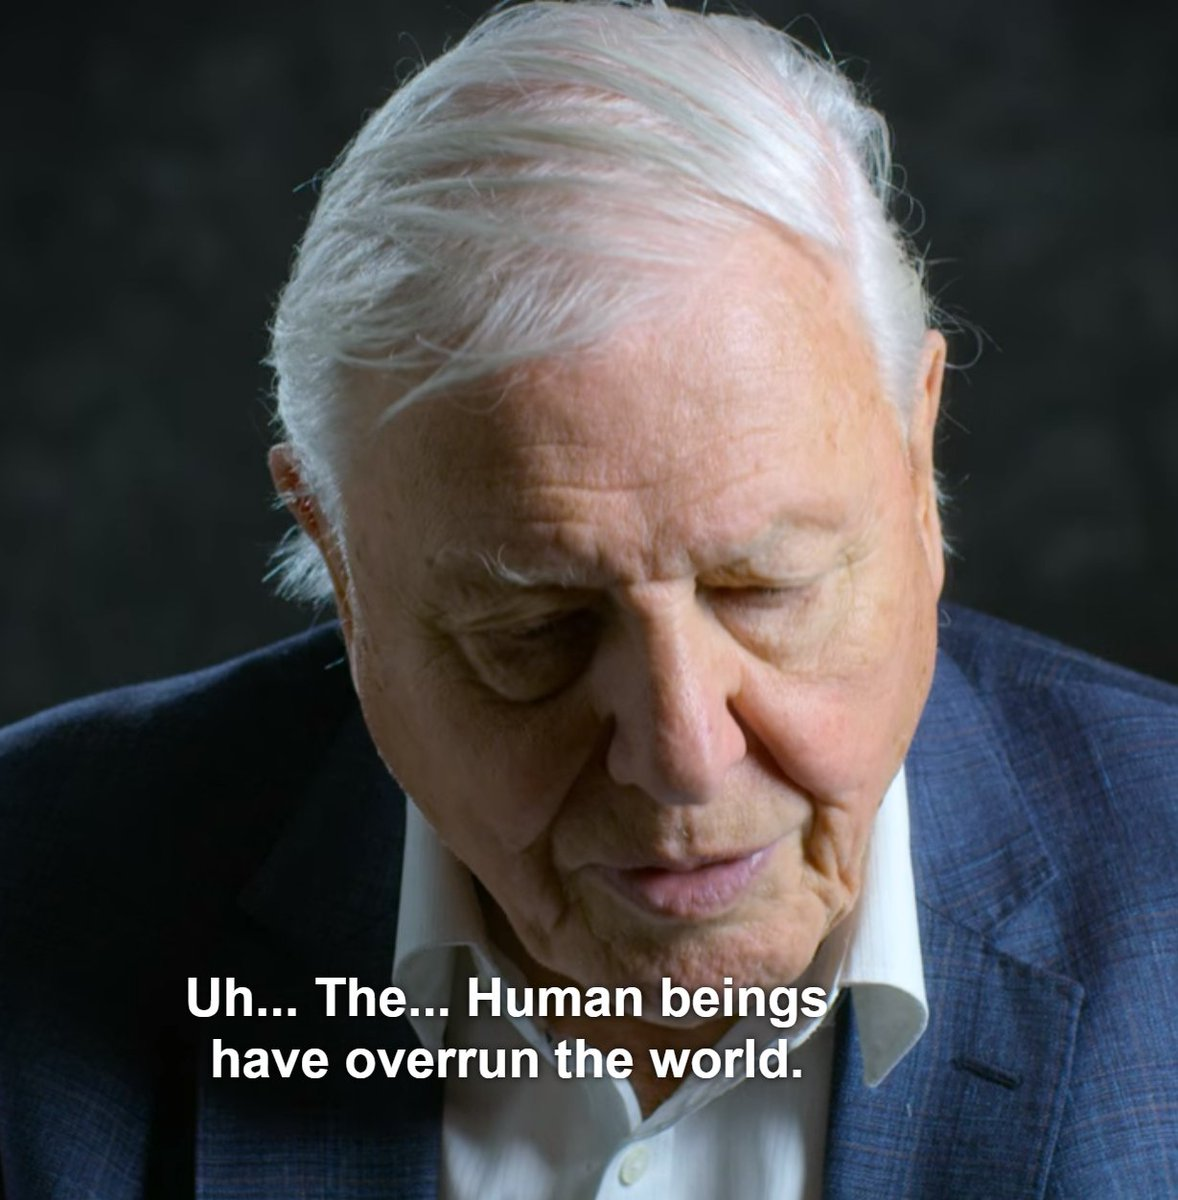 So, I watched David Attenborough's  @DavidALifeFilm, and I liked it. But I think it skips over a couple of things that it could've benefited from engaging directly with - namely, the dark history of population movements and climate justice. Review here:  https://ketanjoshi.co/2020/10/05/david-attenboroughs-good-film-doesnt-shake-off-the-echoes-of-a-bad-past/